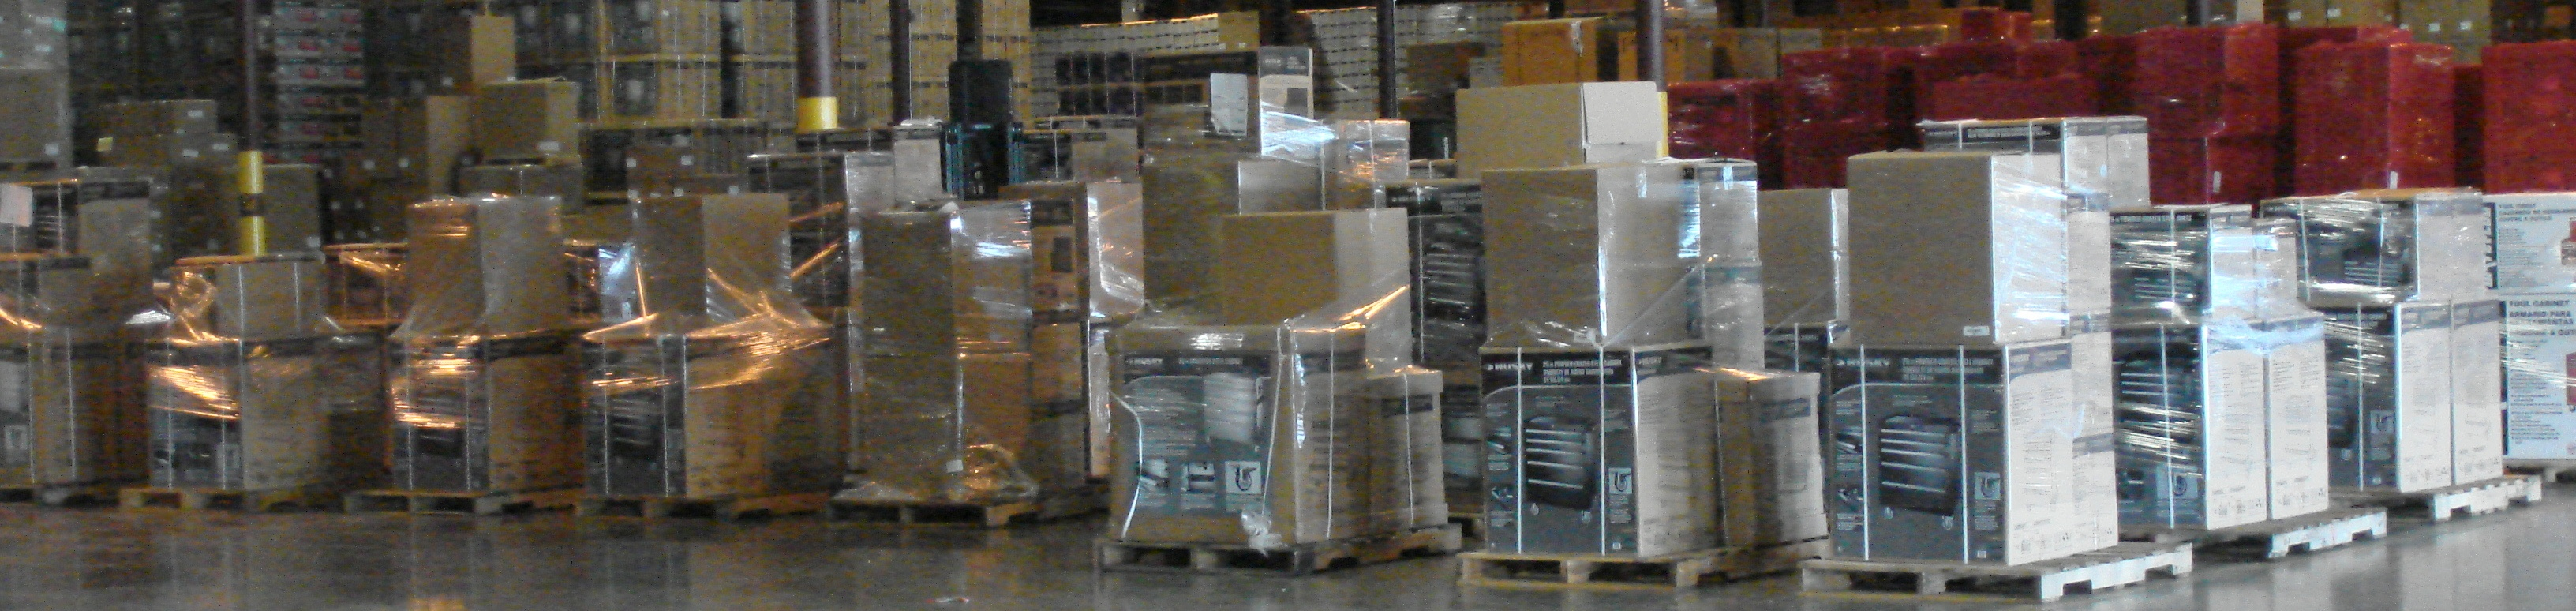 Warehouse-Toolboxes-Slider